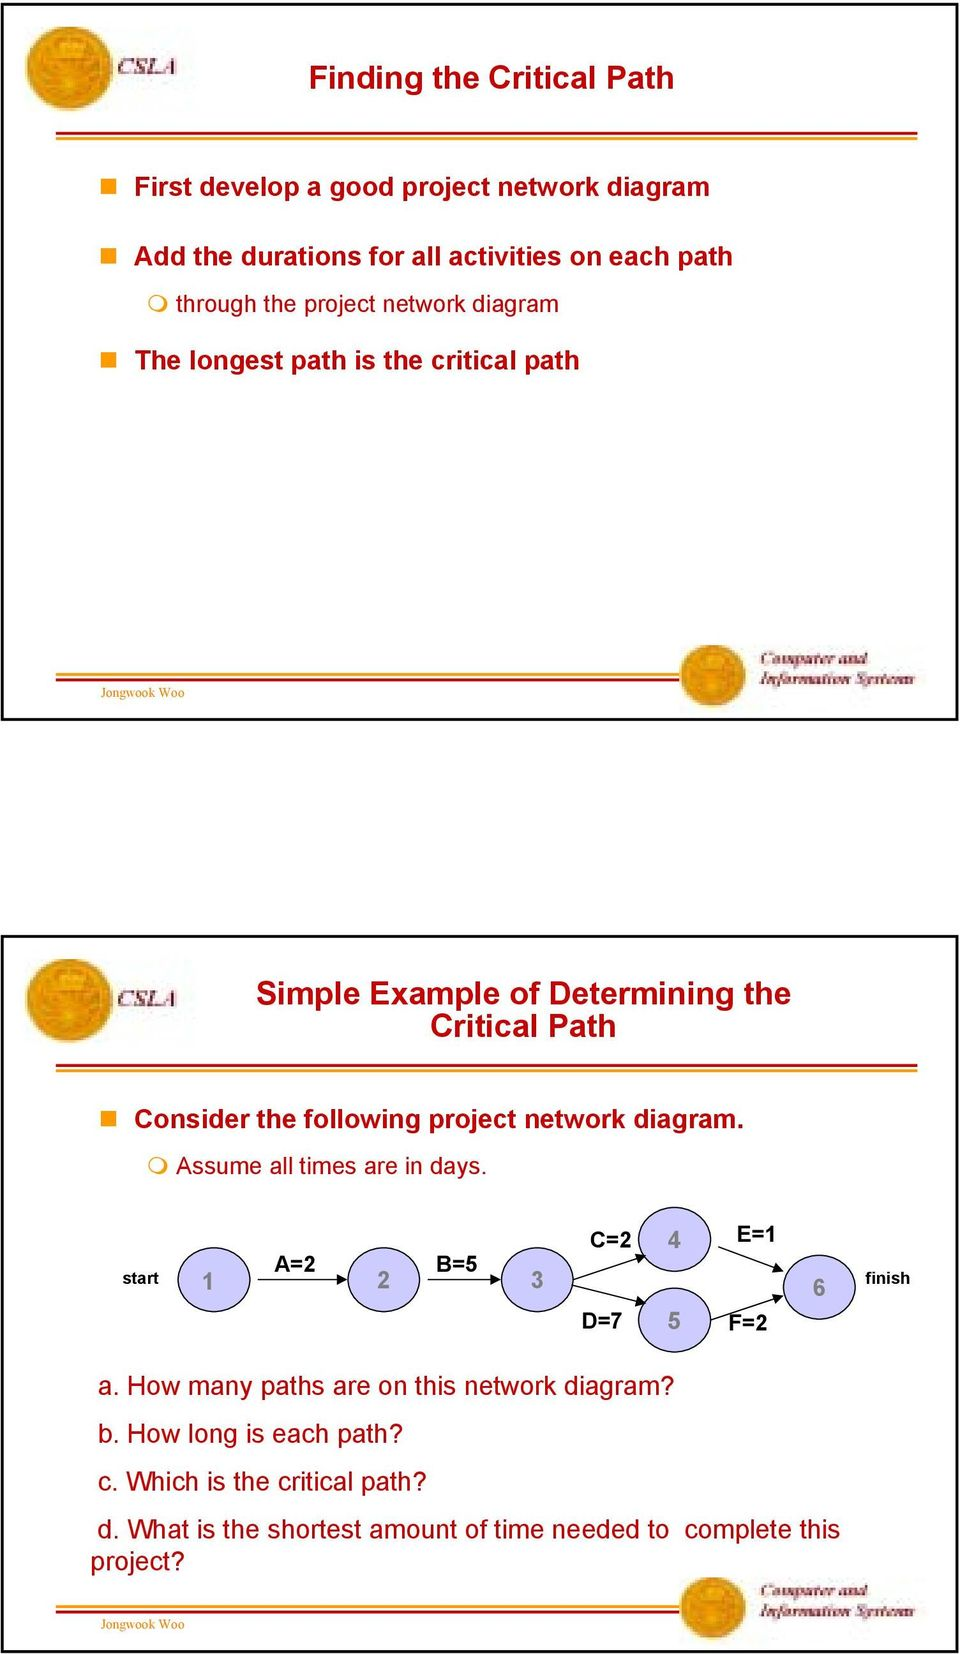 project network diagram. Assume all times are in days. start C=2 4 E=1 A=2 B=5 1 2 3 6 D=7 5 F=2 finish a.